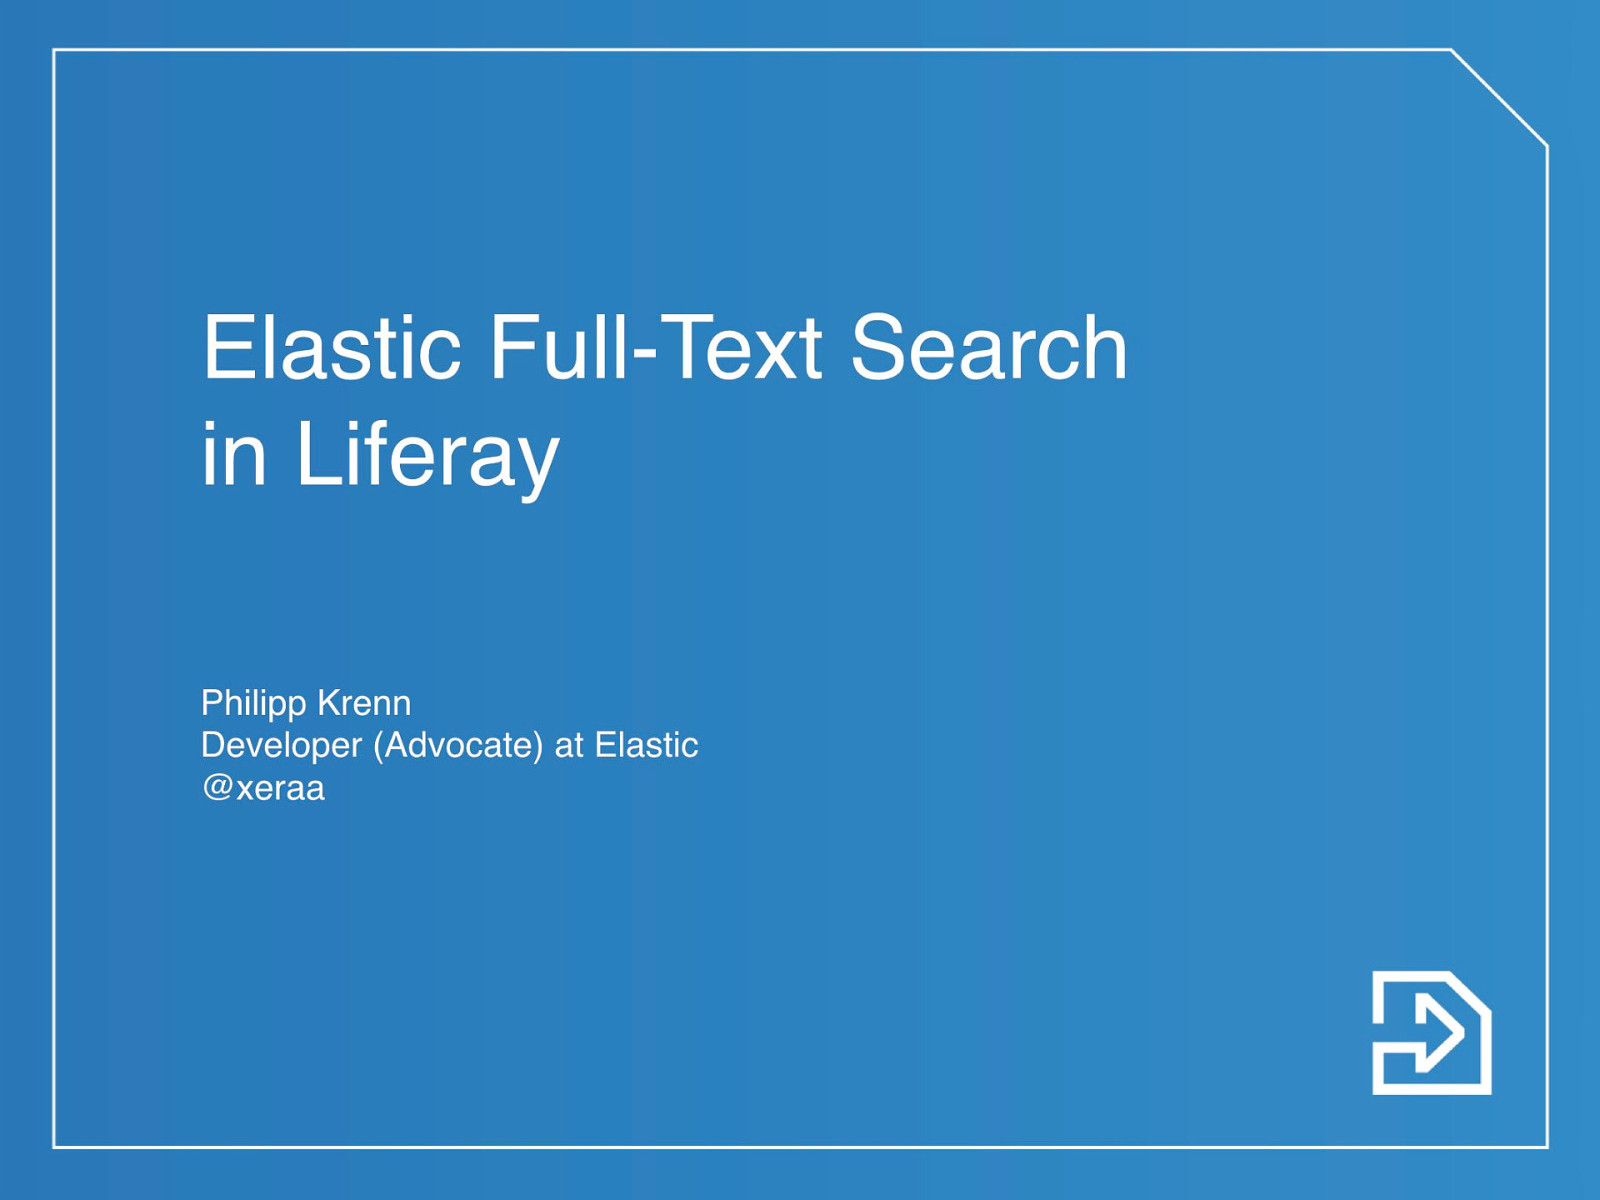 Elastic Full-Text Search in Liferay